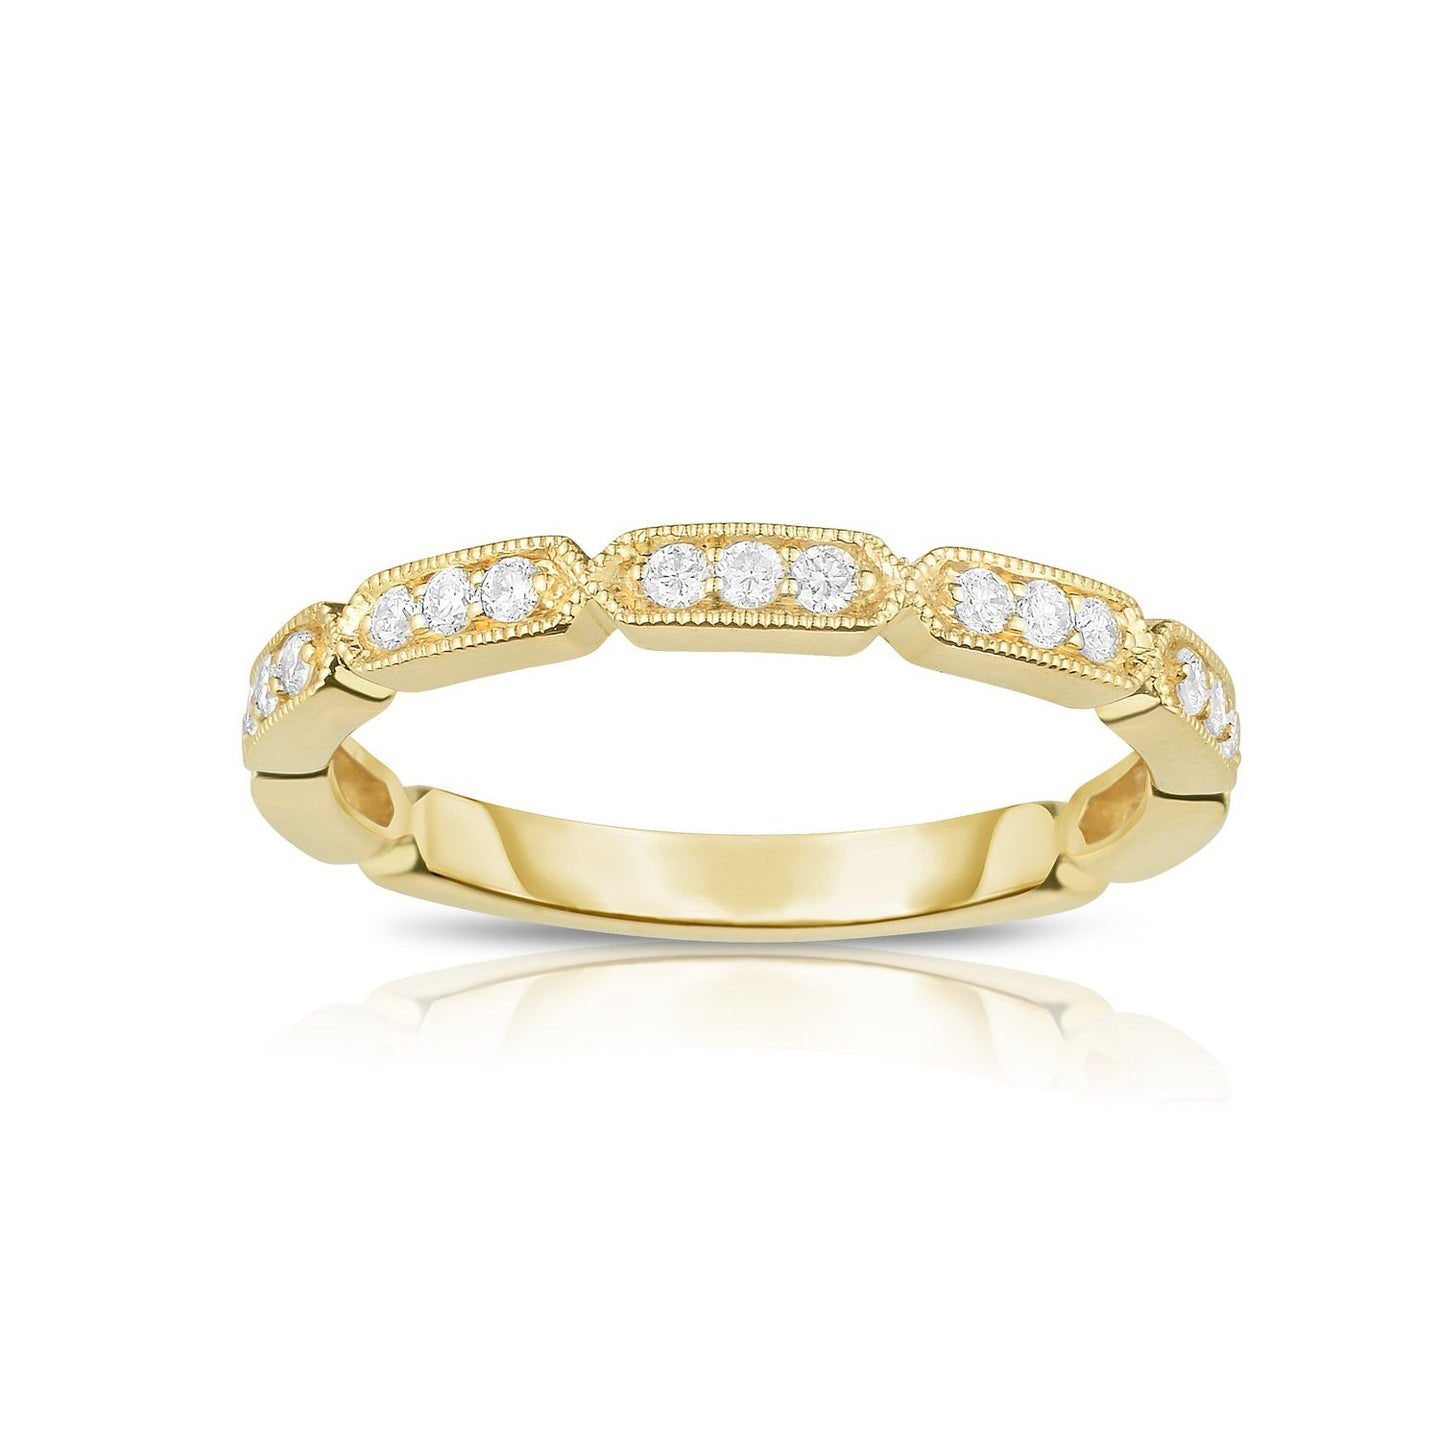 Sabel Collection 14K Yellow Gold Round Diamond Band Ring with Milgrain Detail